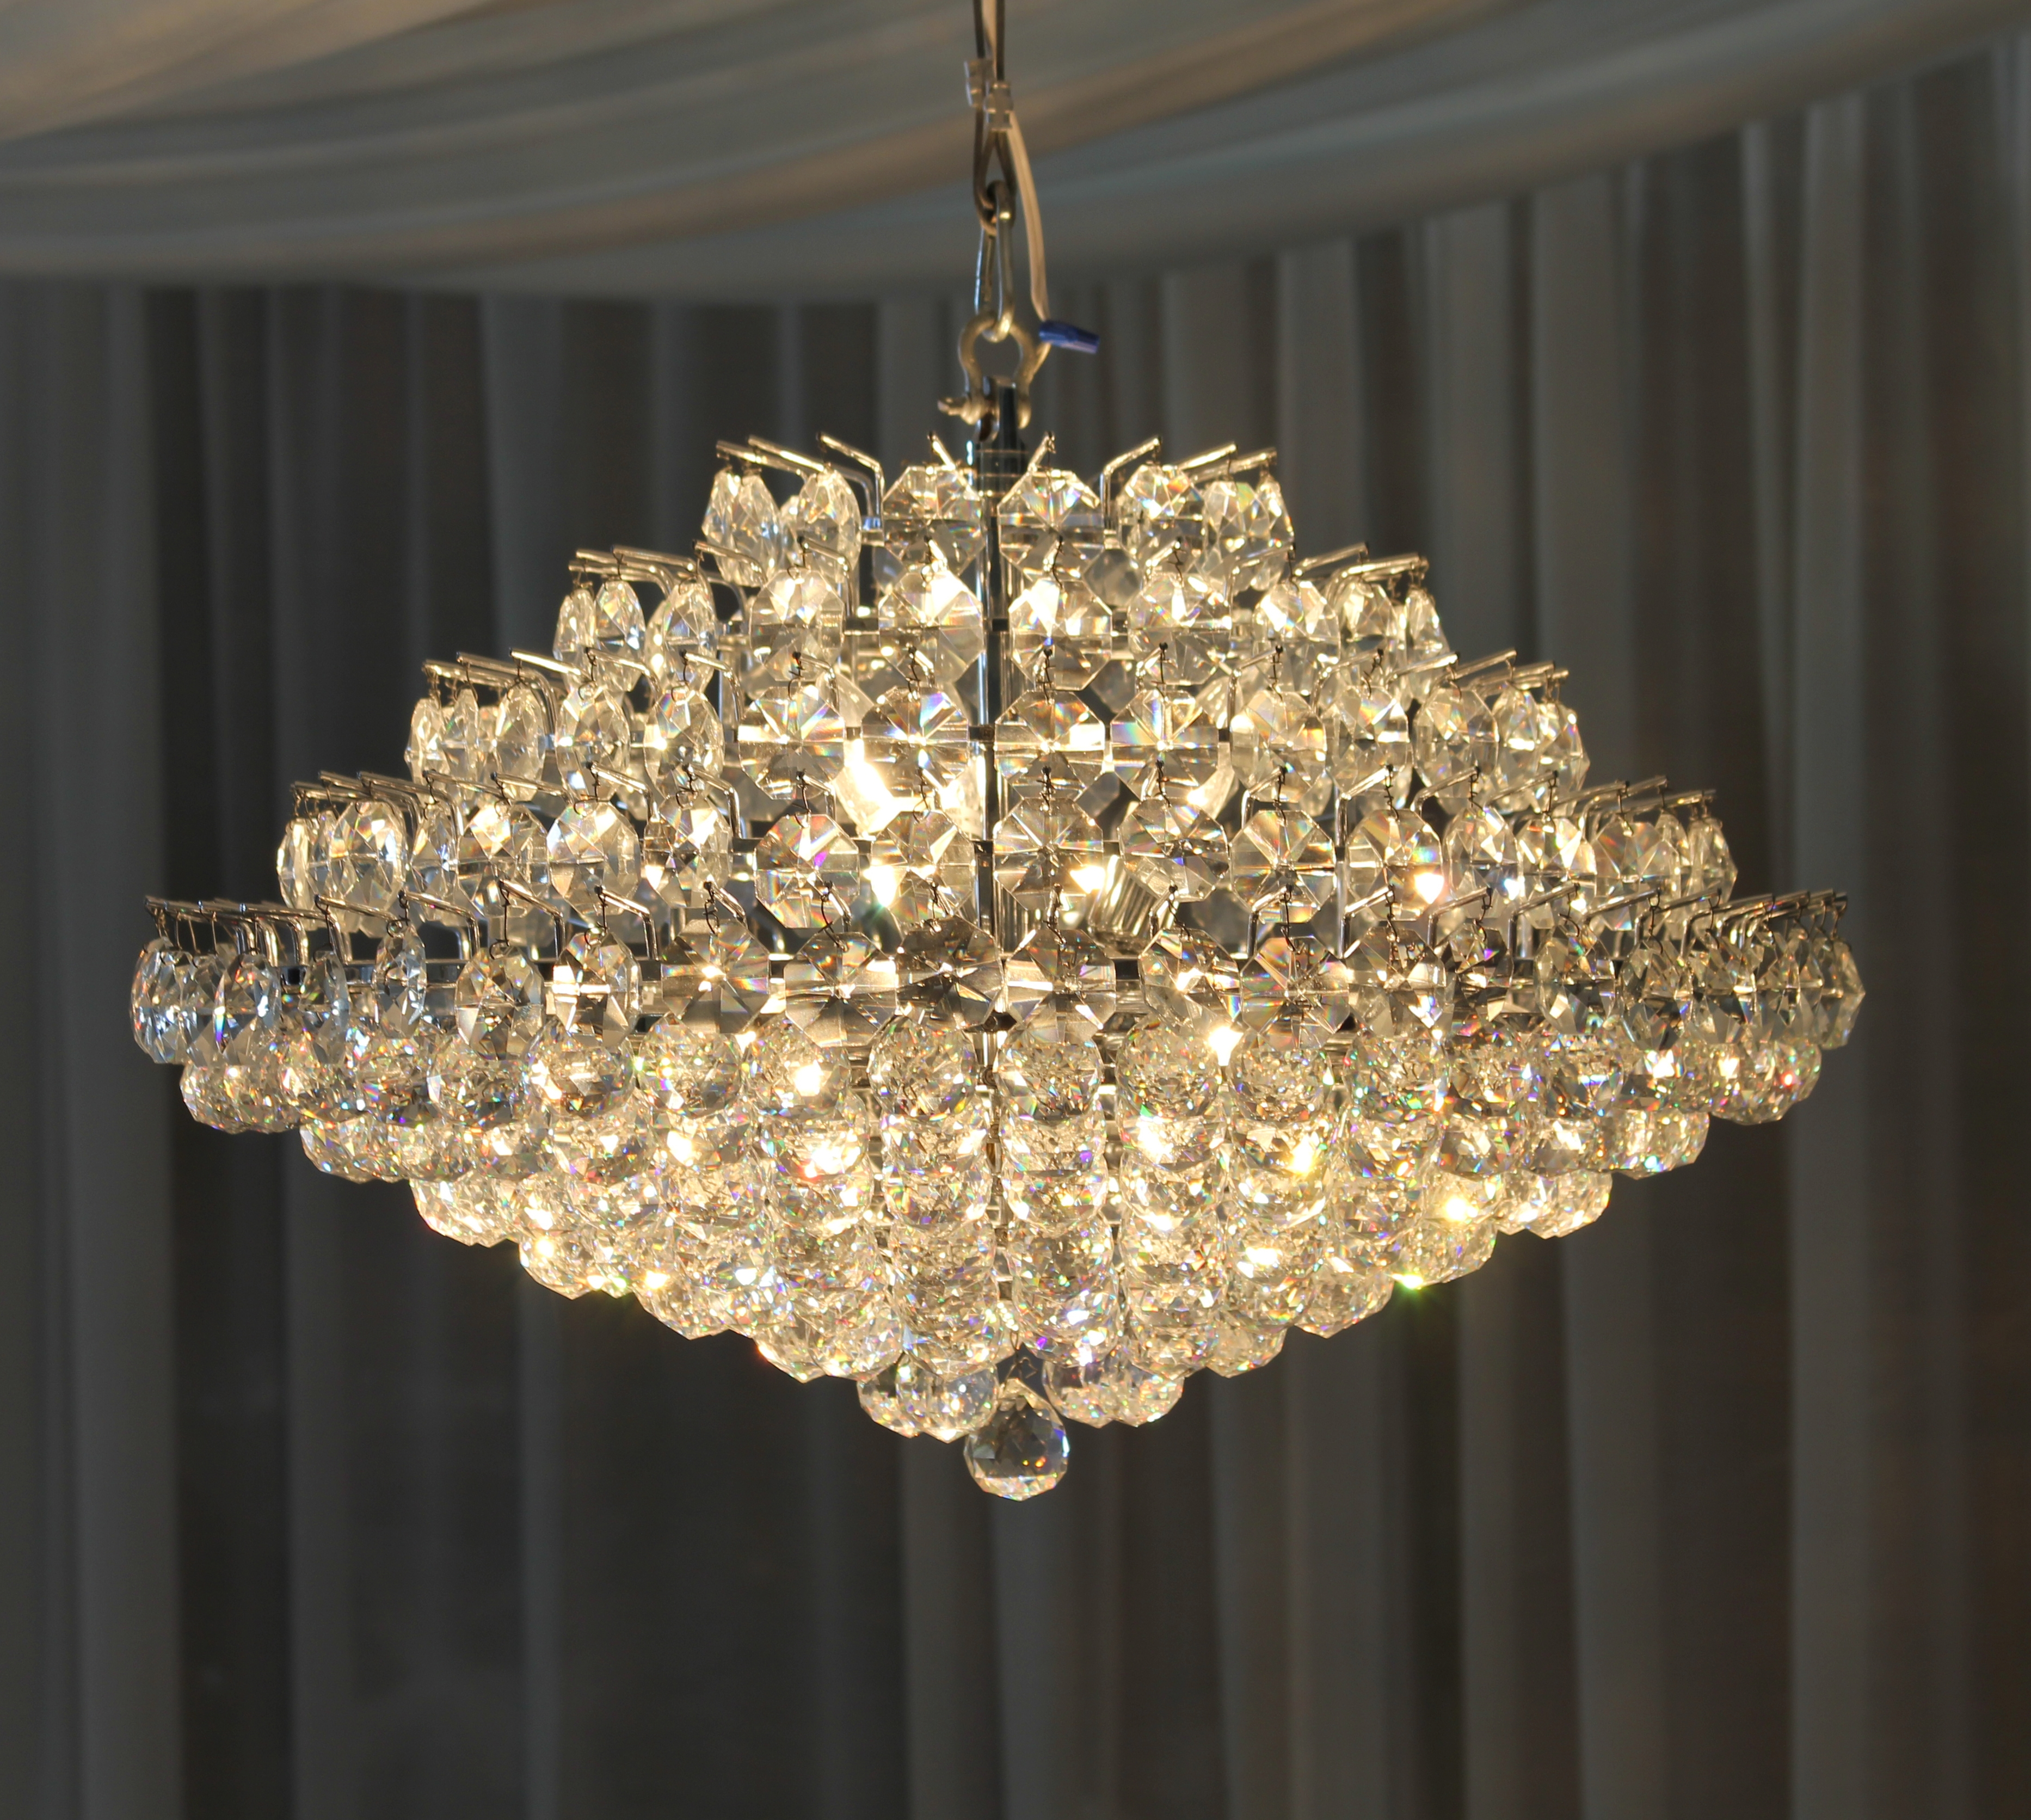 Living Room Cheap Chandeliers Hallway Chandelier Crystal Throughout Hallway Chandeliers (Image 19 of 25)